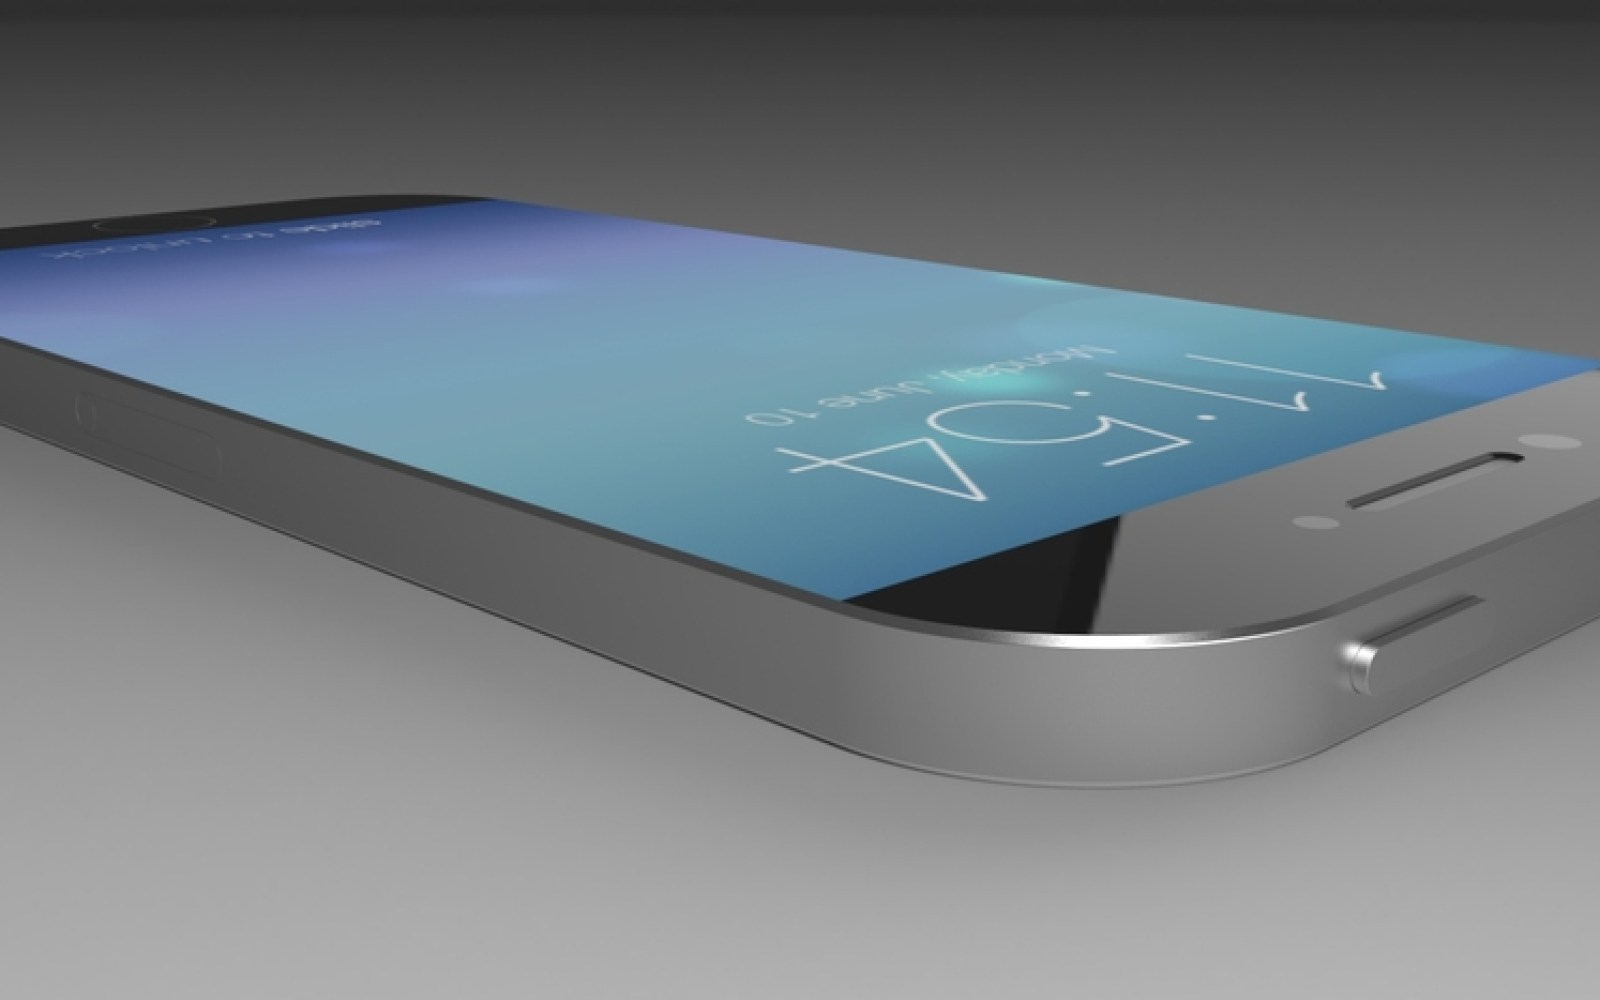 Pegatron will make half of iPhone 6 supplies, says sketchy rumor